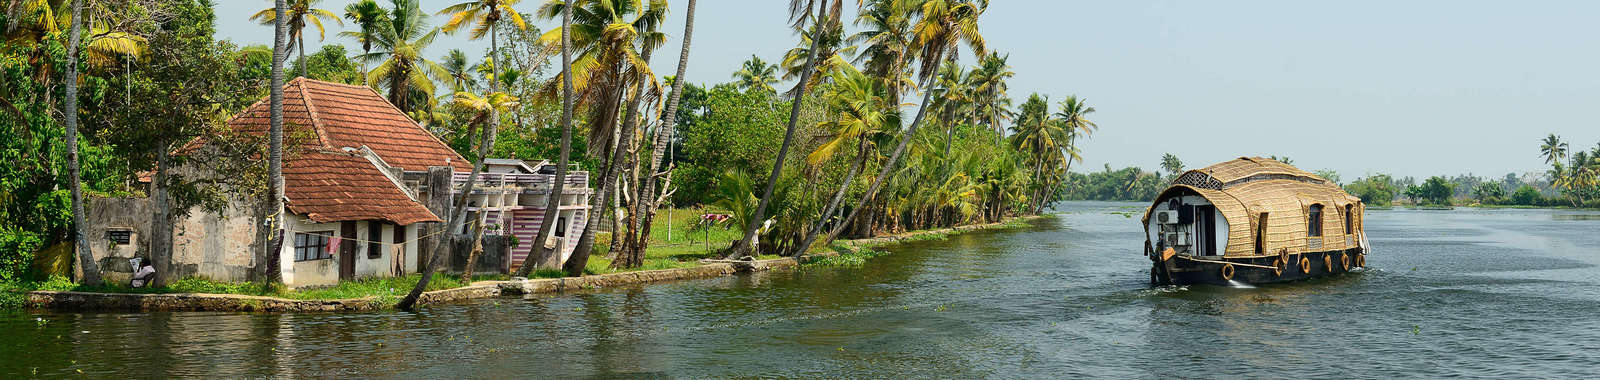 Relax on a slow backwater cruise on a tailor made holiday to Kerala